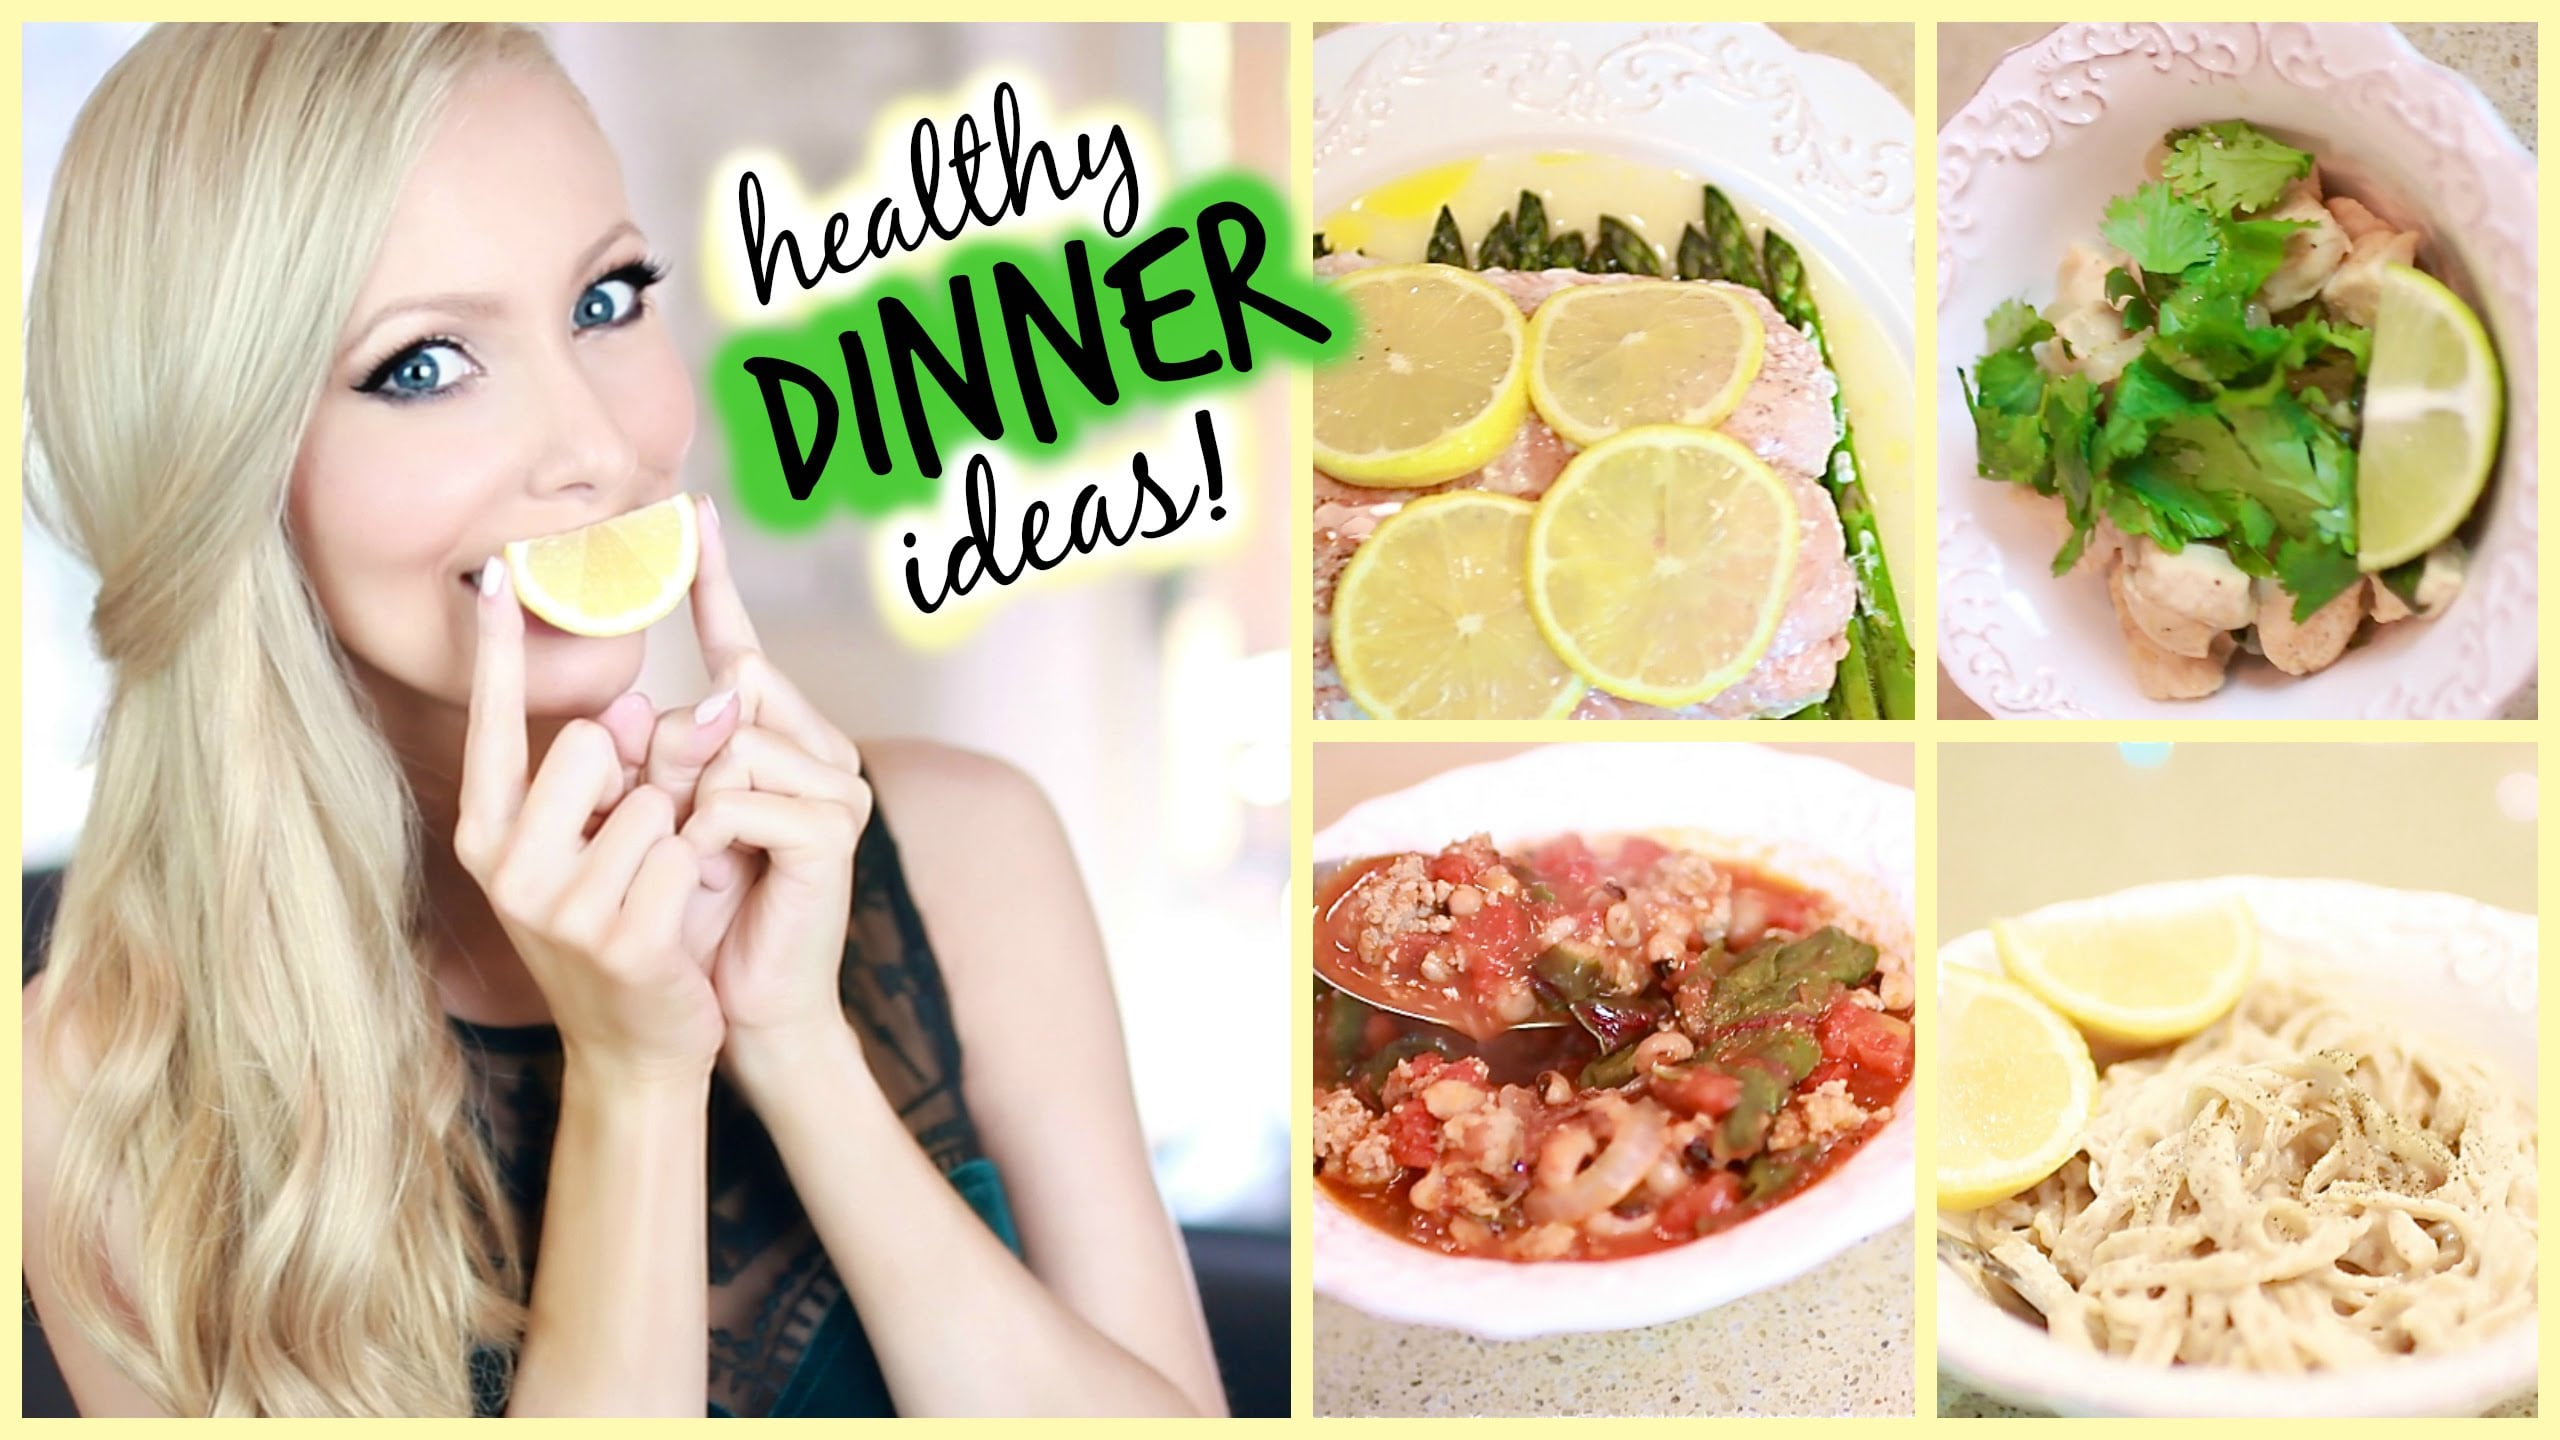 latest news diets workouts healthy recipes msn health - HD2560×1440